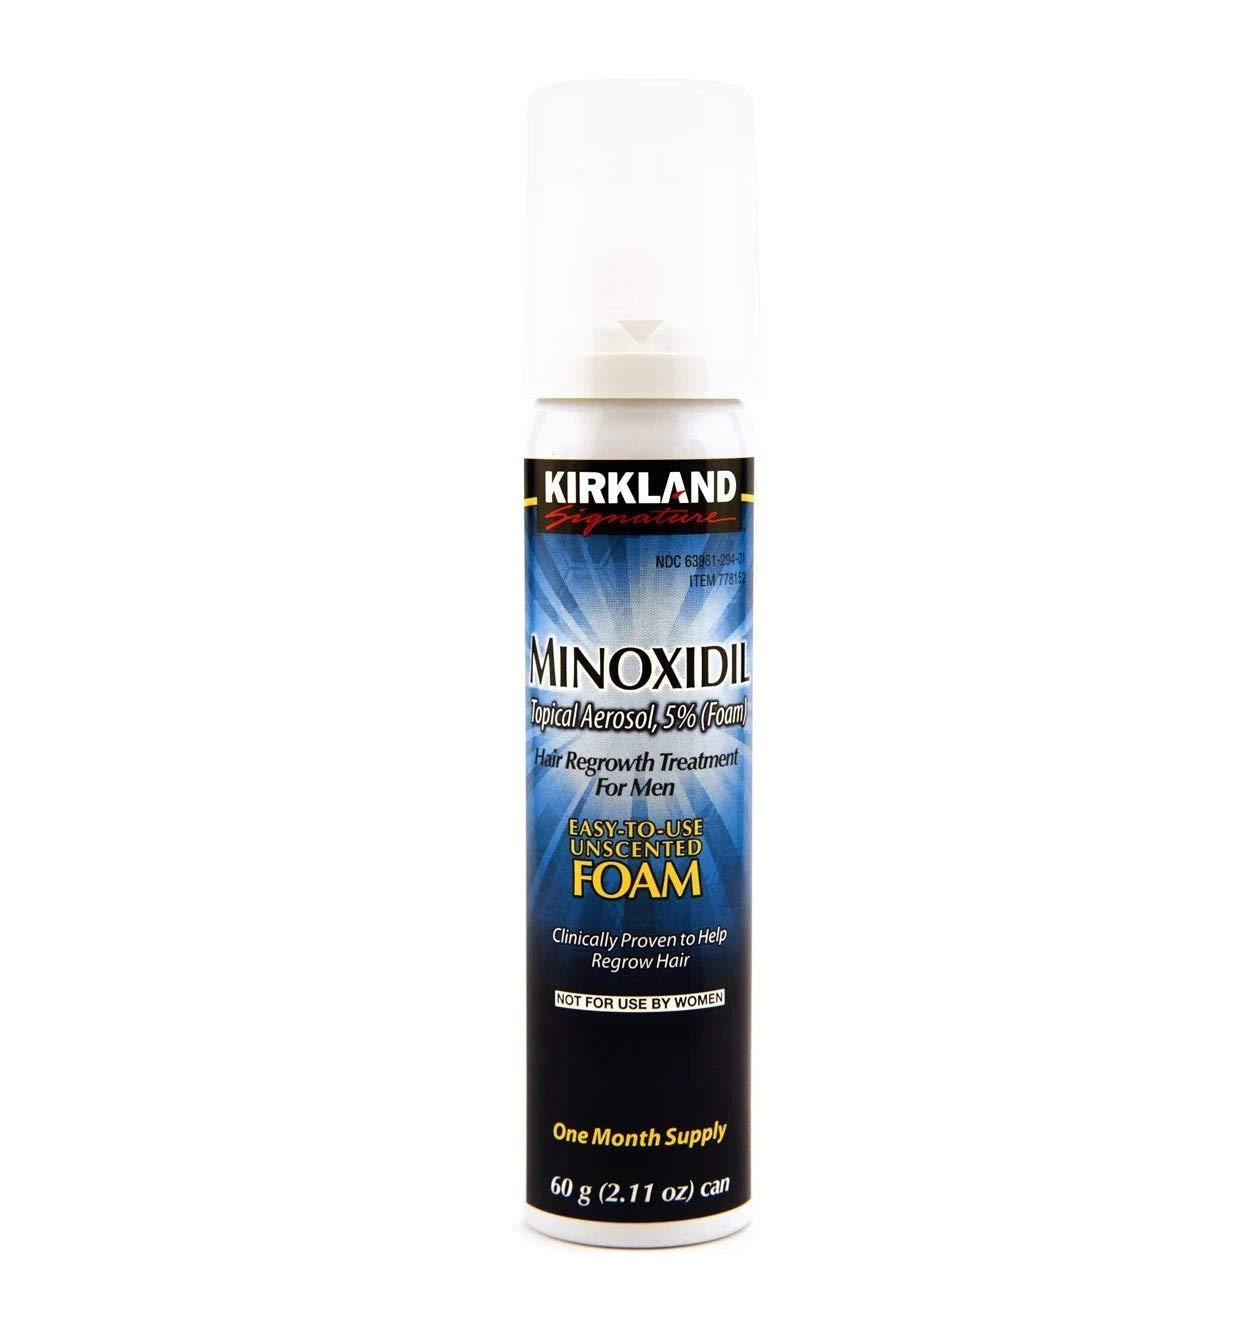 Kirkland Hair Loss Foam Mens 5% Minoxidil 1 Month Generic Locked and New 1 Can Hair Care